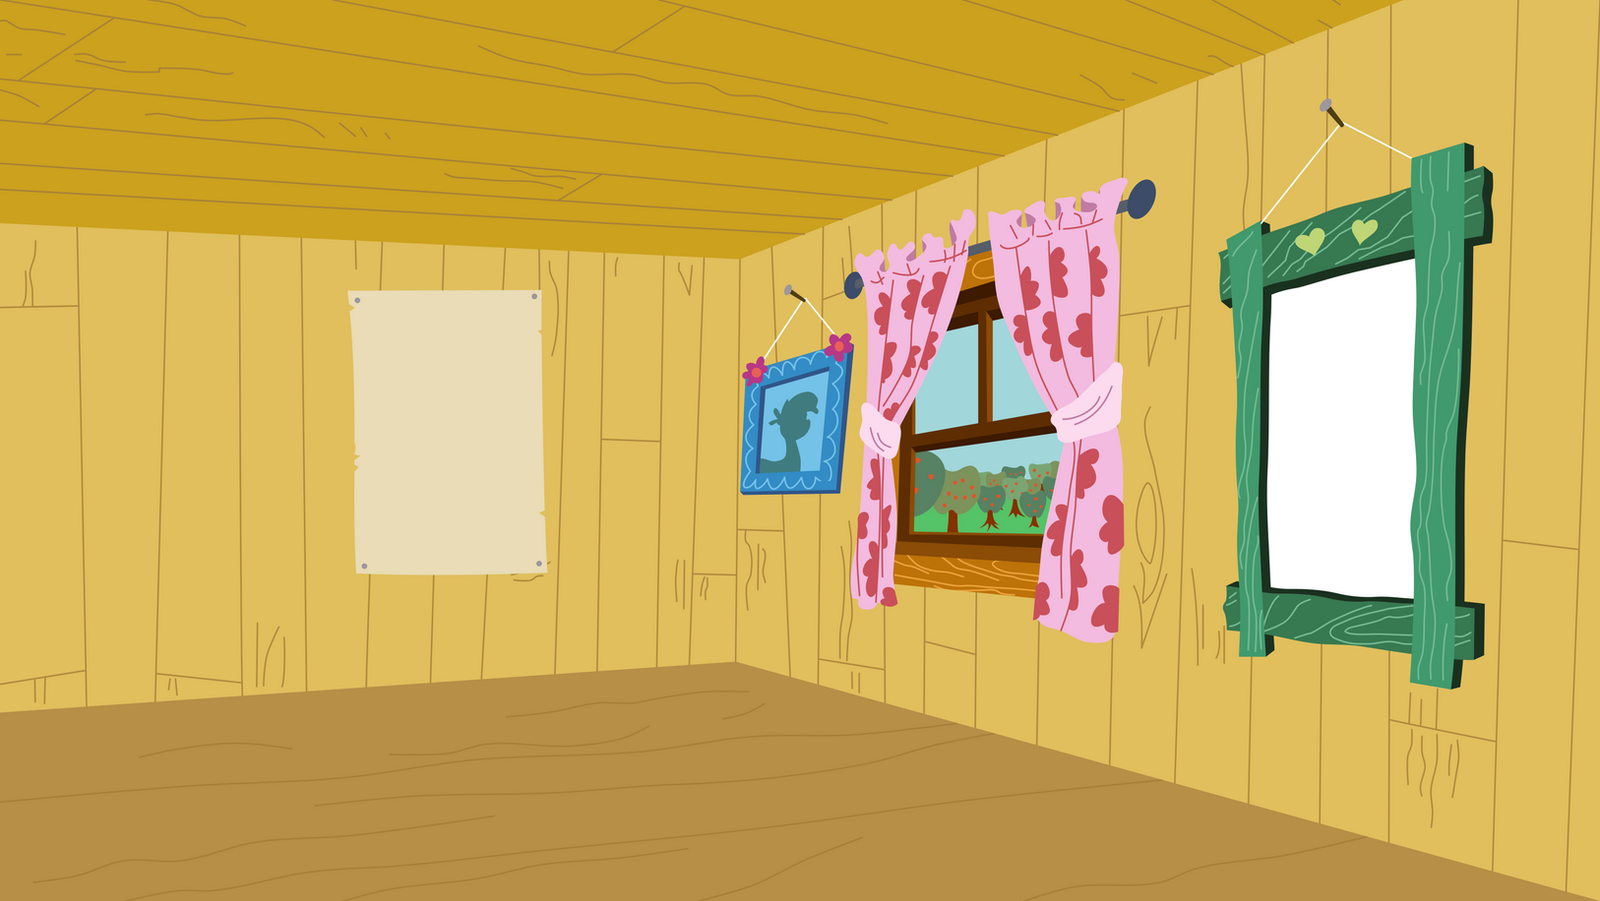 Cutie Mark Crusaders' Clubhouse by mandydax